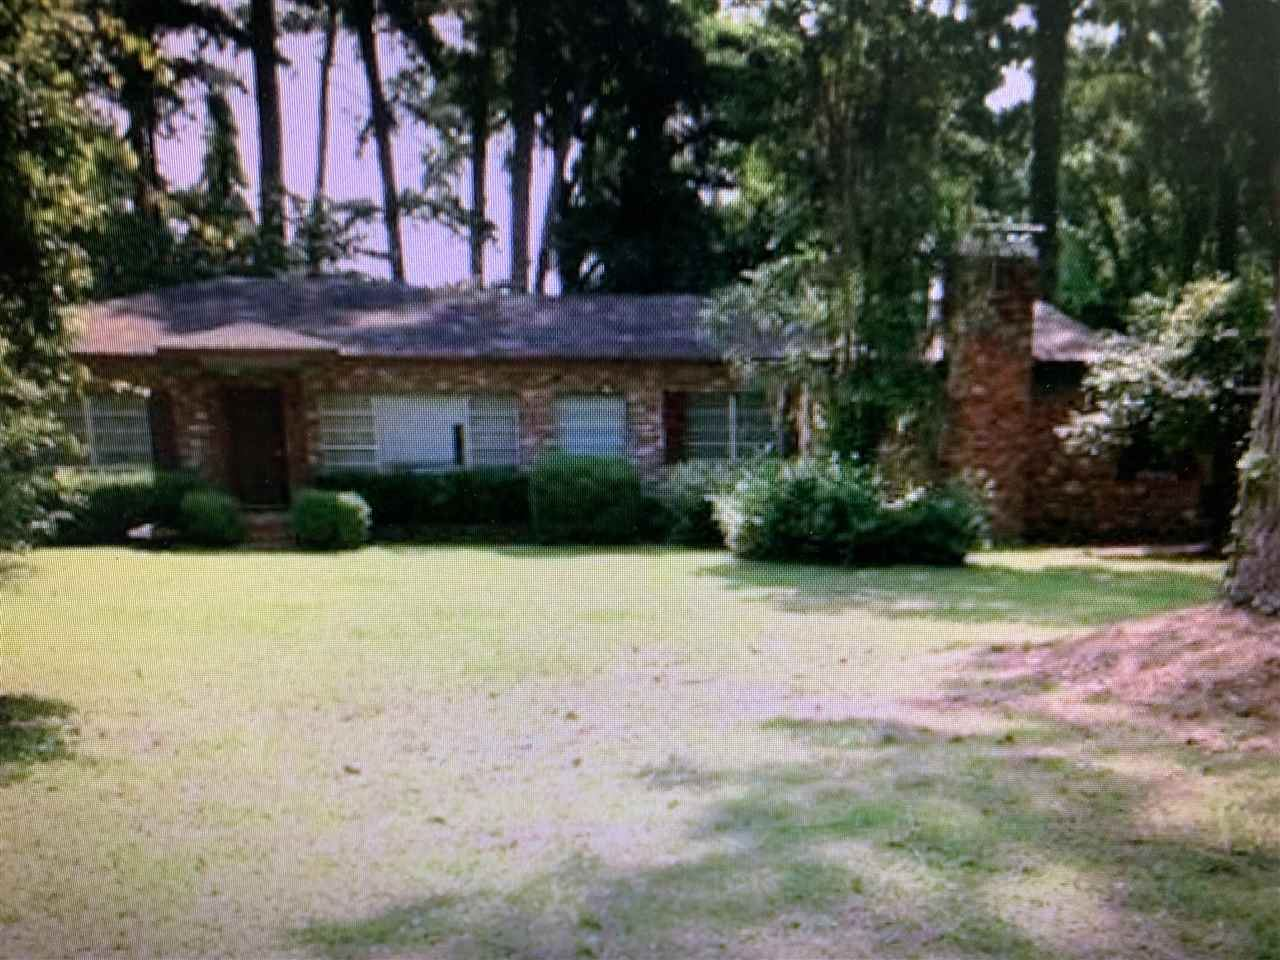 Photo for 217 Cactus Street, TALLAHASSEE, FL 32304 (MLS # 320884)